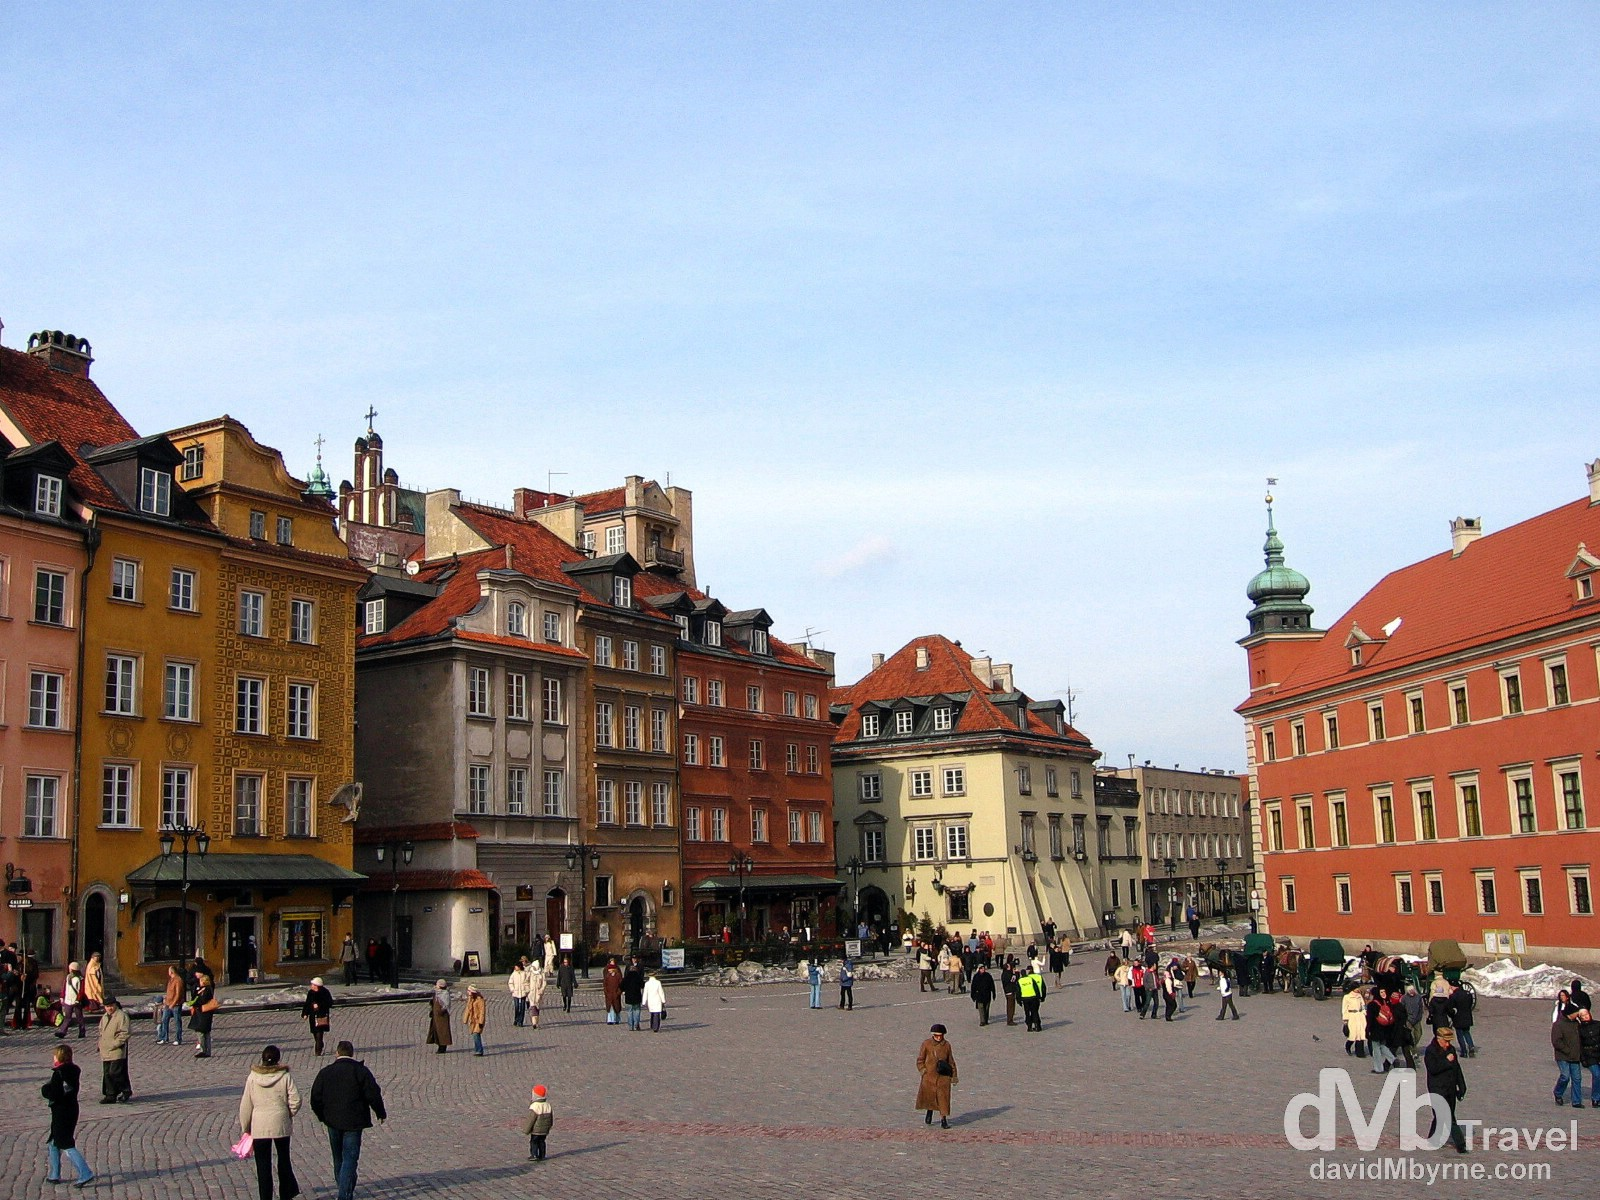 Castle Square in the UNESCO listed Old Town of Warsaw, Poland. March 5, 2006.